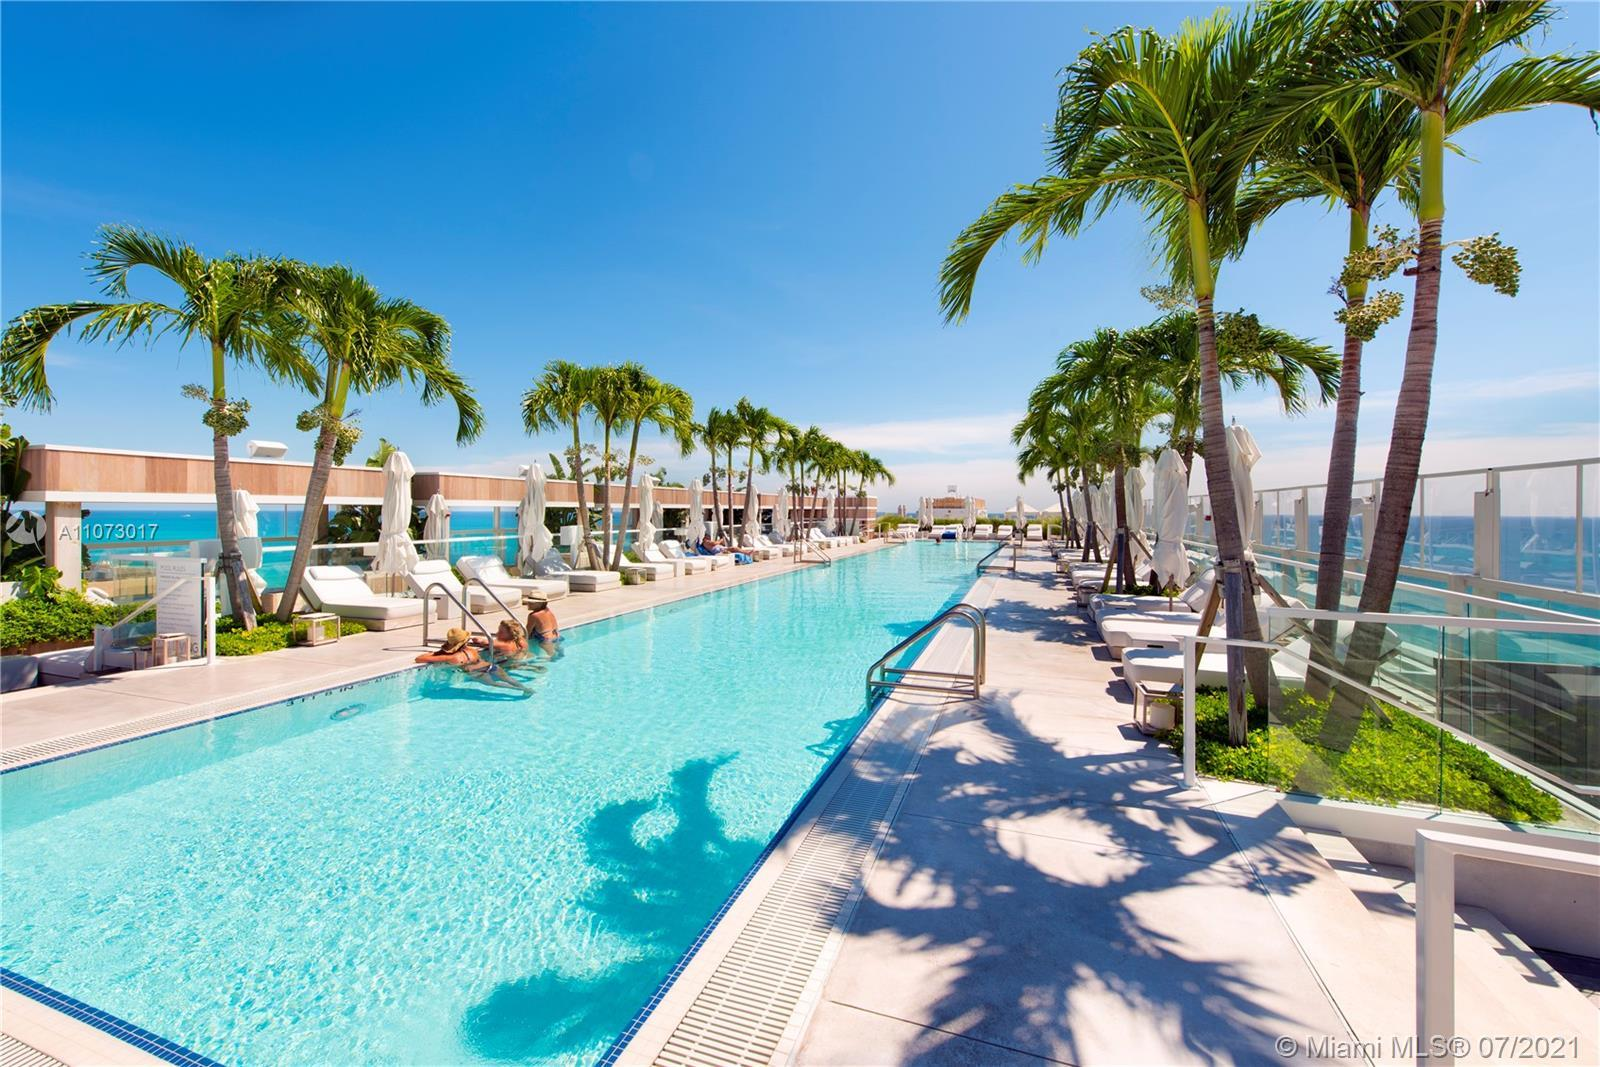 JUST REDUCED...Beautiful direct ocean view residence at the new 1 Hotel & Homes in South Beach. This